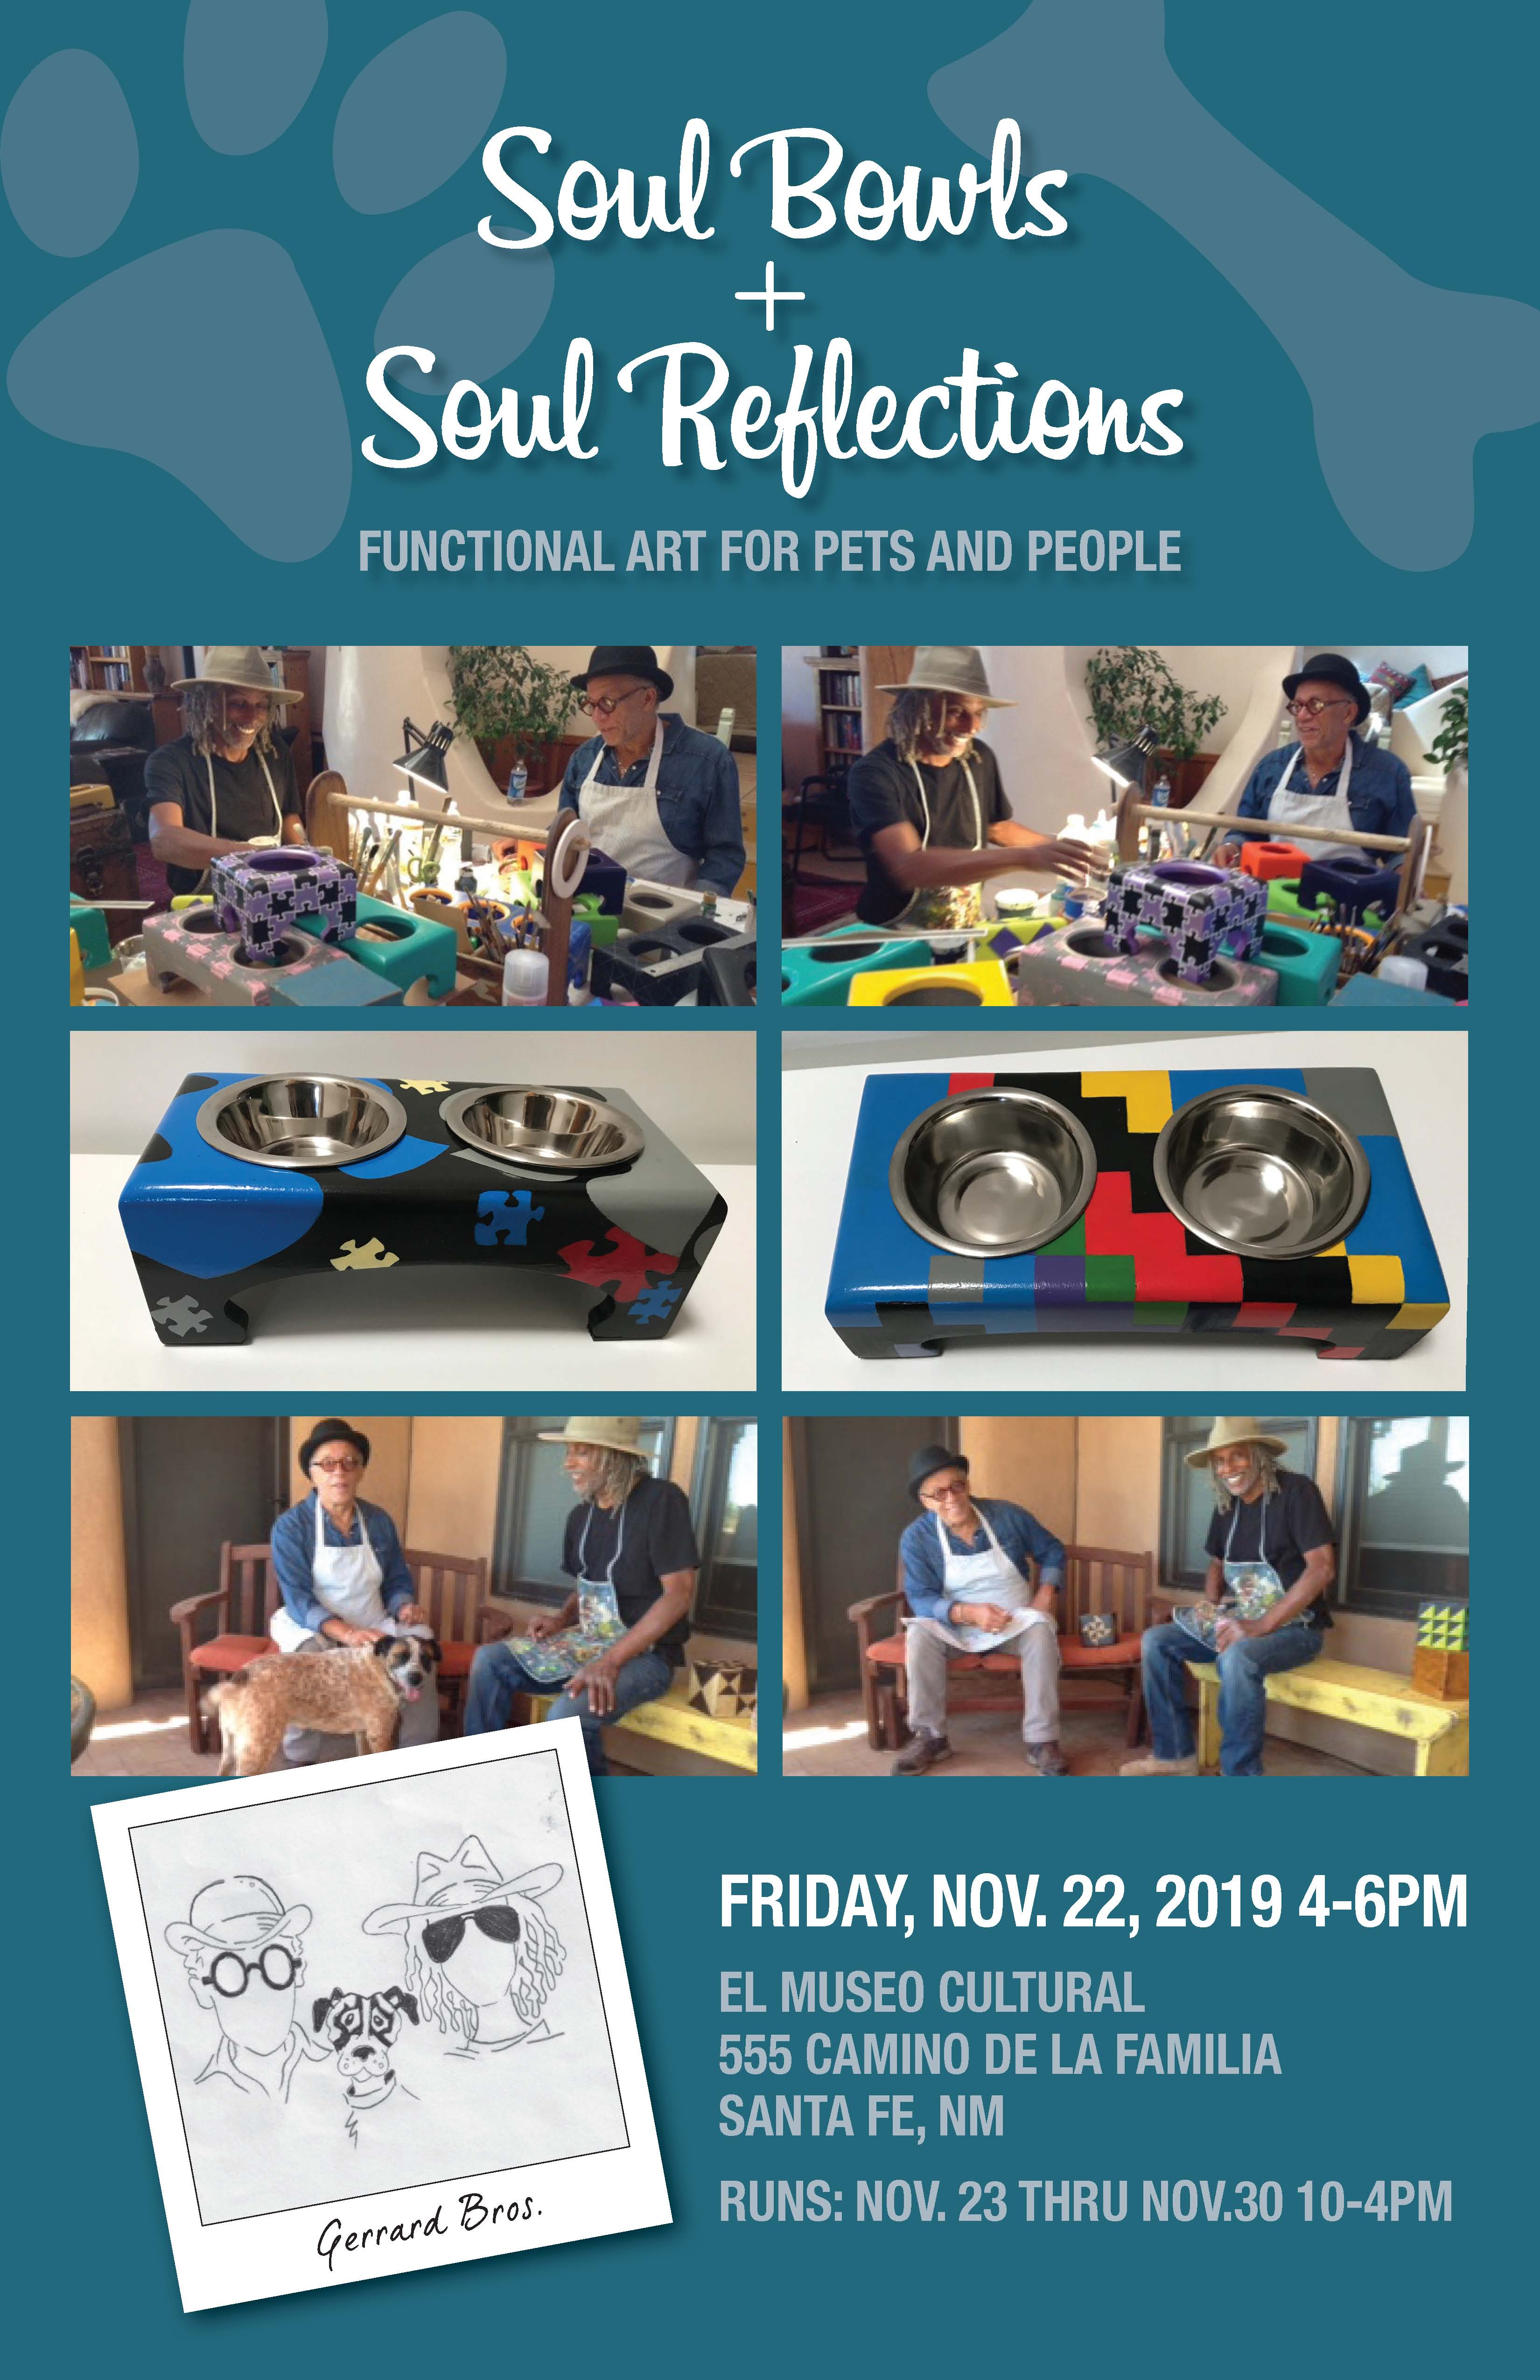 SOUL BOWLS AND SOUL REFLECTIONS: FUNCTIONAL ART FOR PETS AND PEOPLE @ El Museo Cultural de Santa Fe | Santa Fe | New Mexico | United States